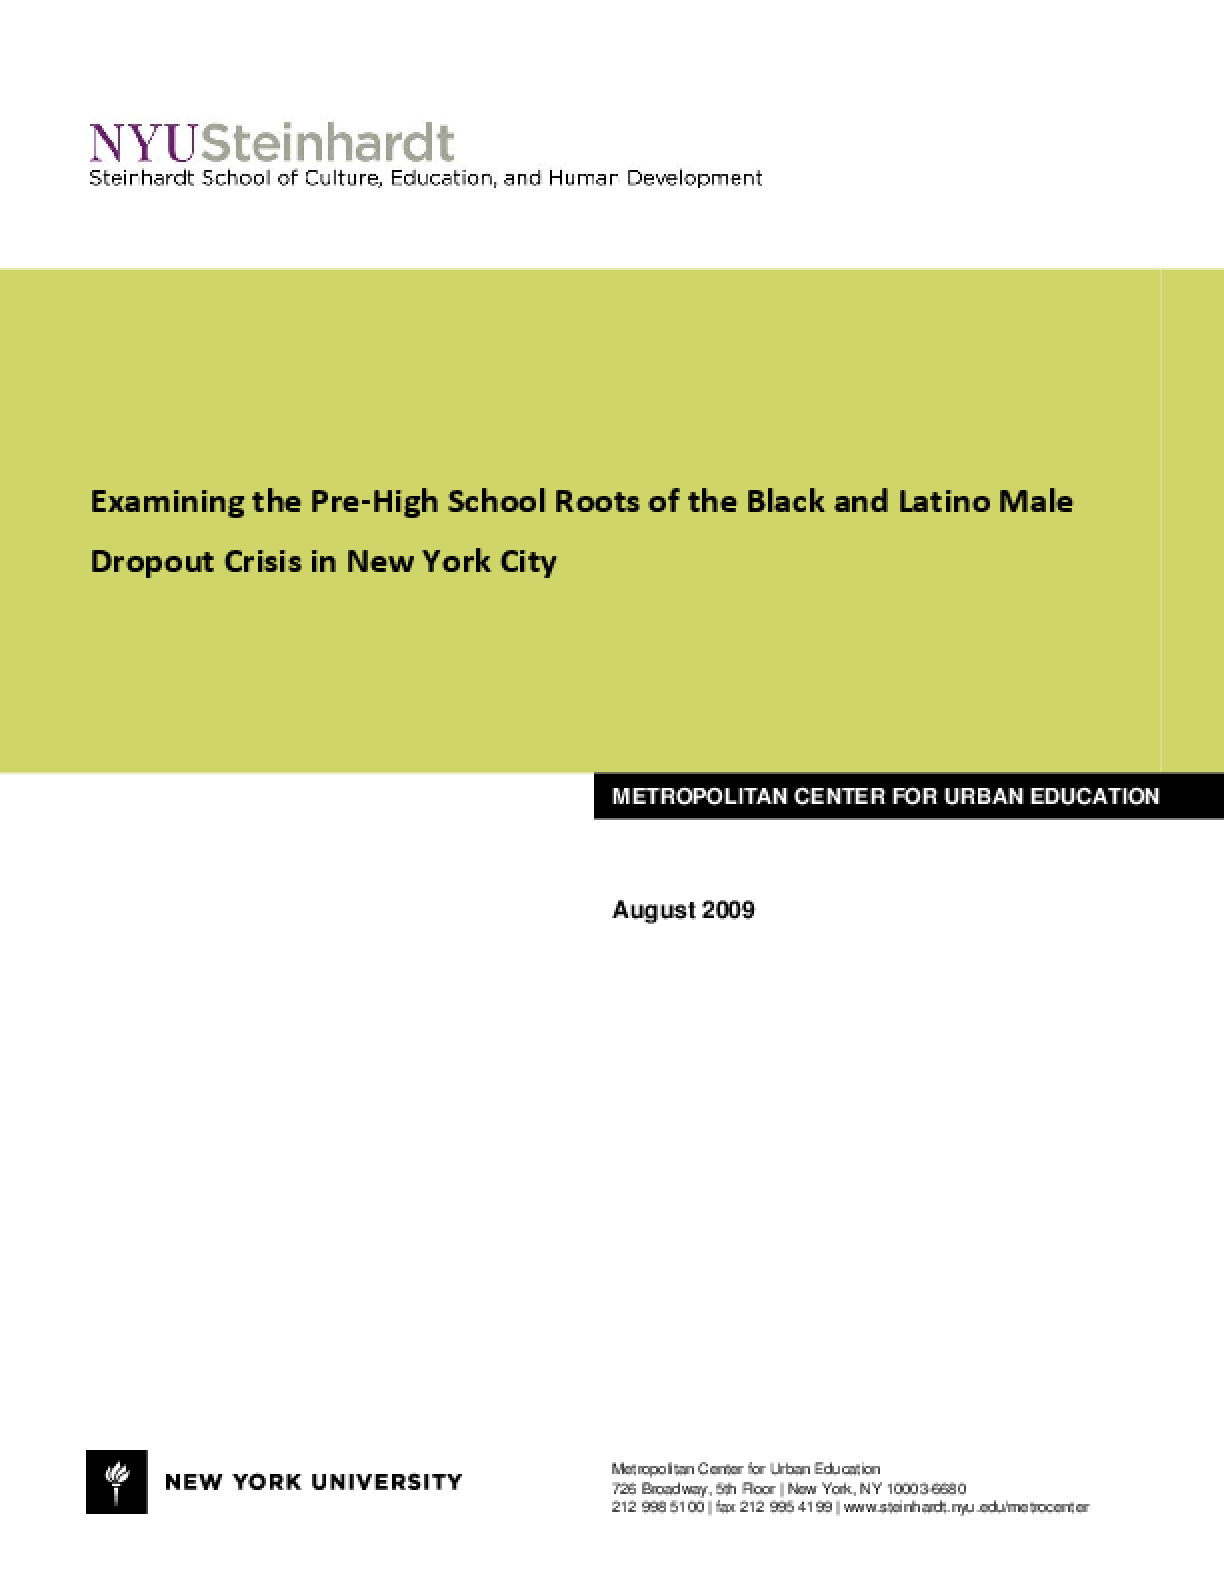 Examining the Pre-High School Roots of the Black and Latino Male Dropout Crisis in New York City